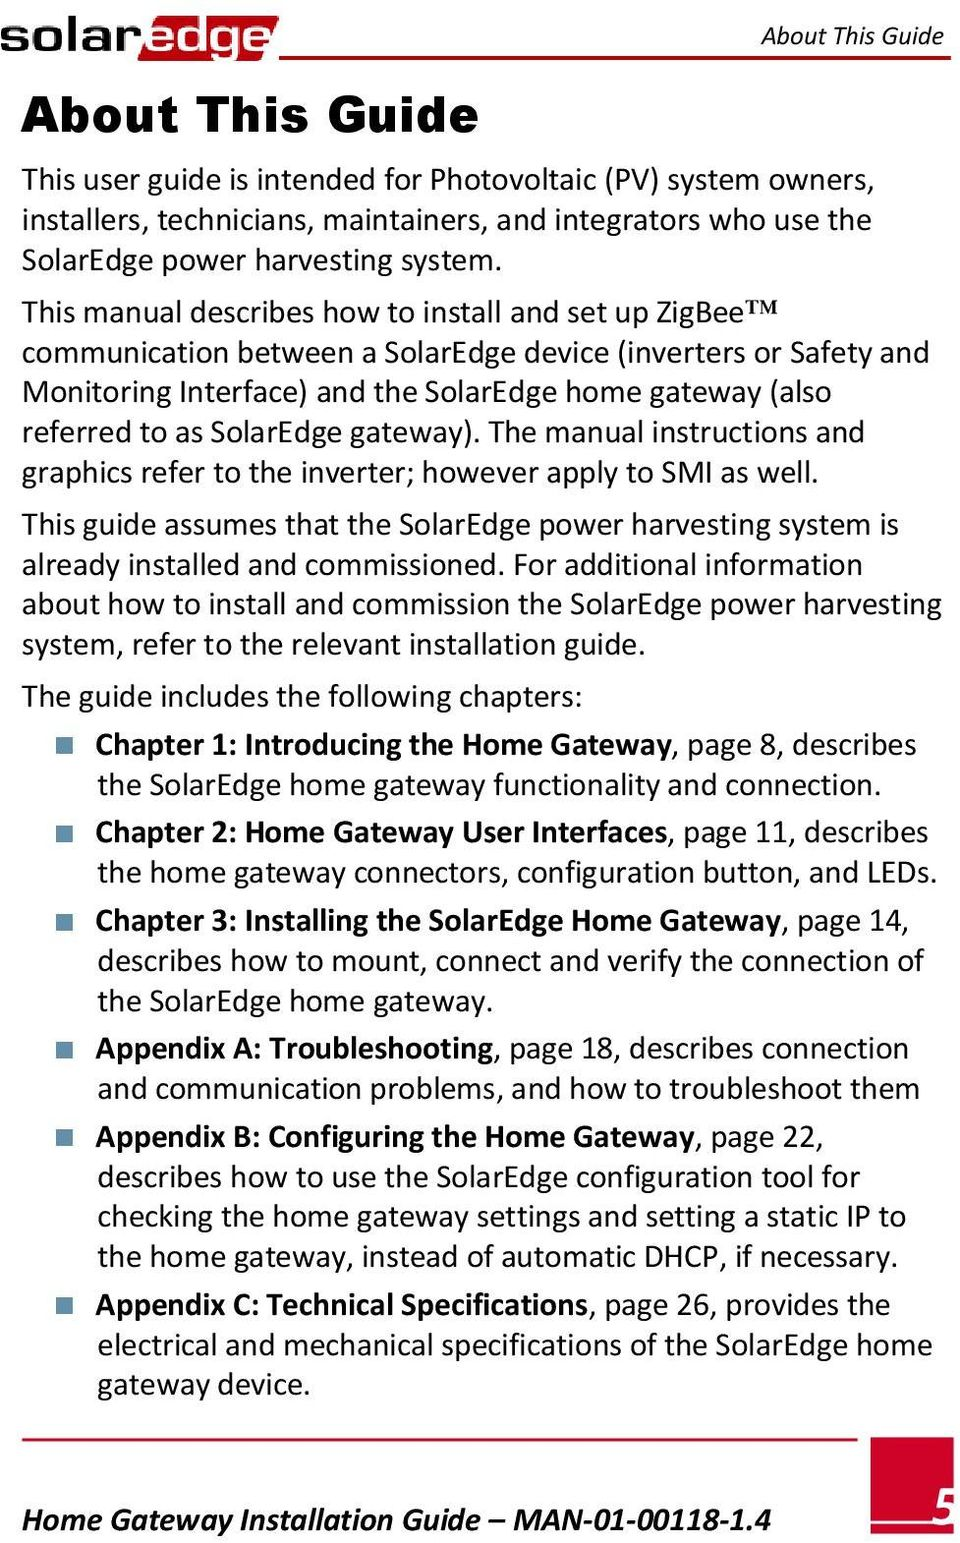 SolarEdge gateway). The manual instructions and graphics refer to the inverter; however apply to SMI as well.